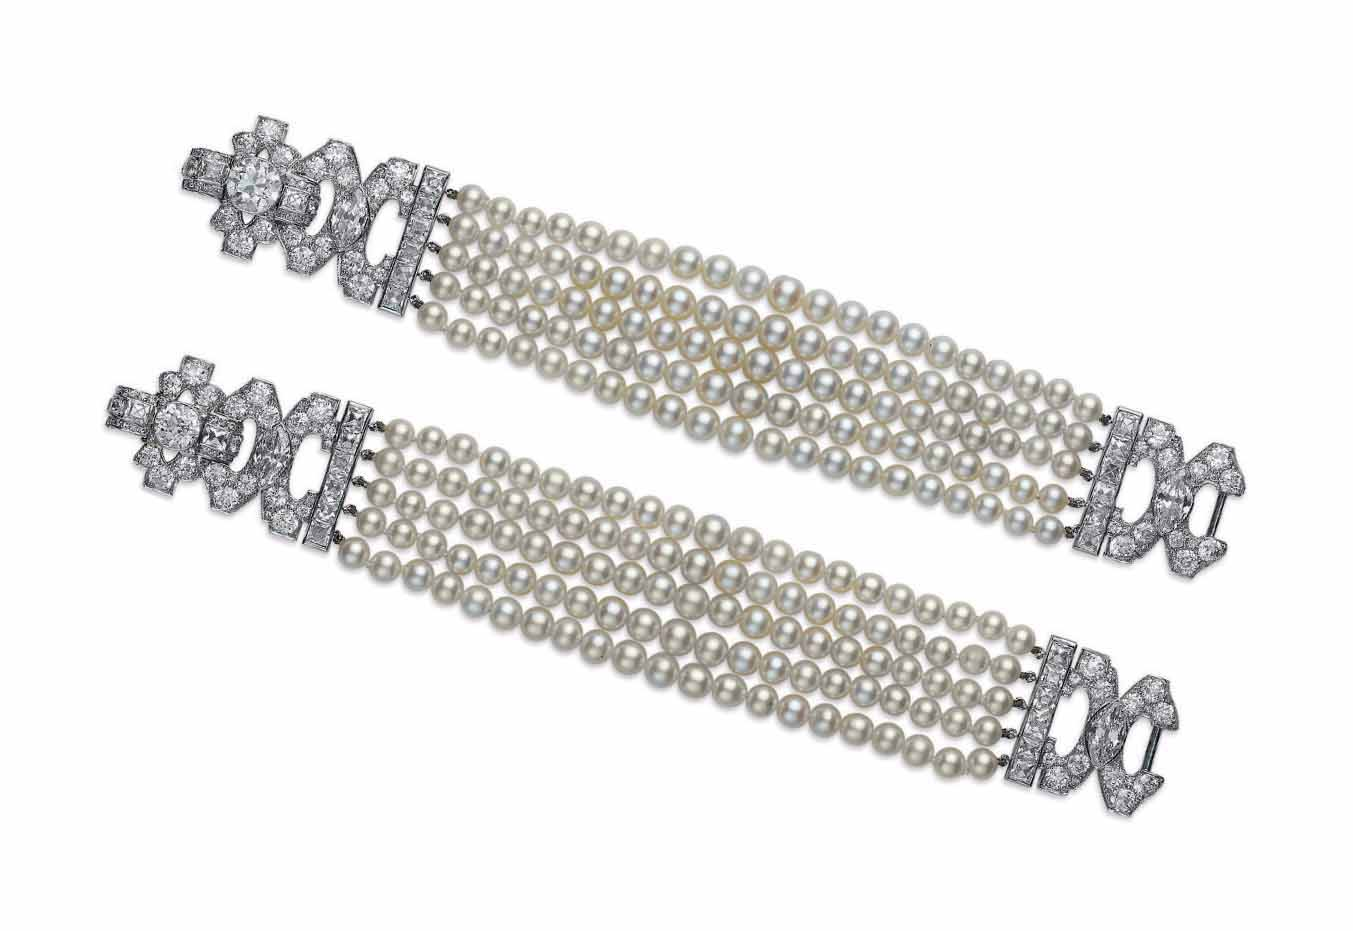 A PAIR OF ART DECO PEARL AND DIAMOND BRACELETS